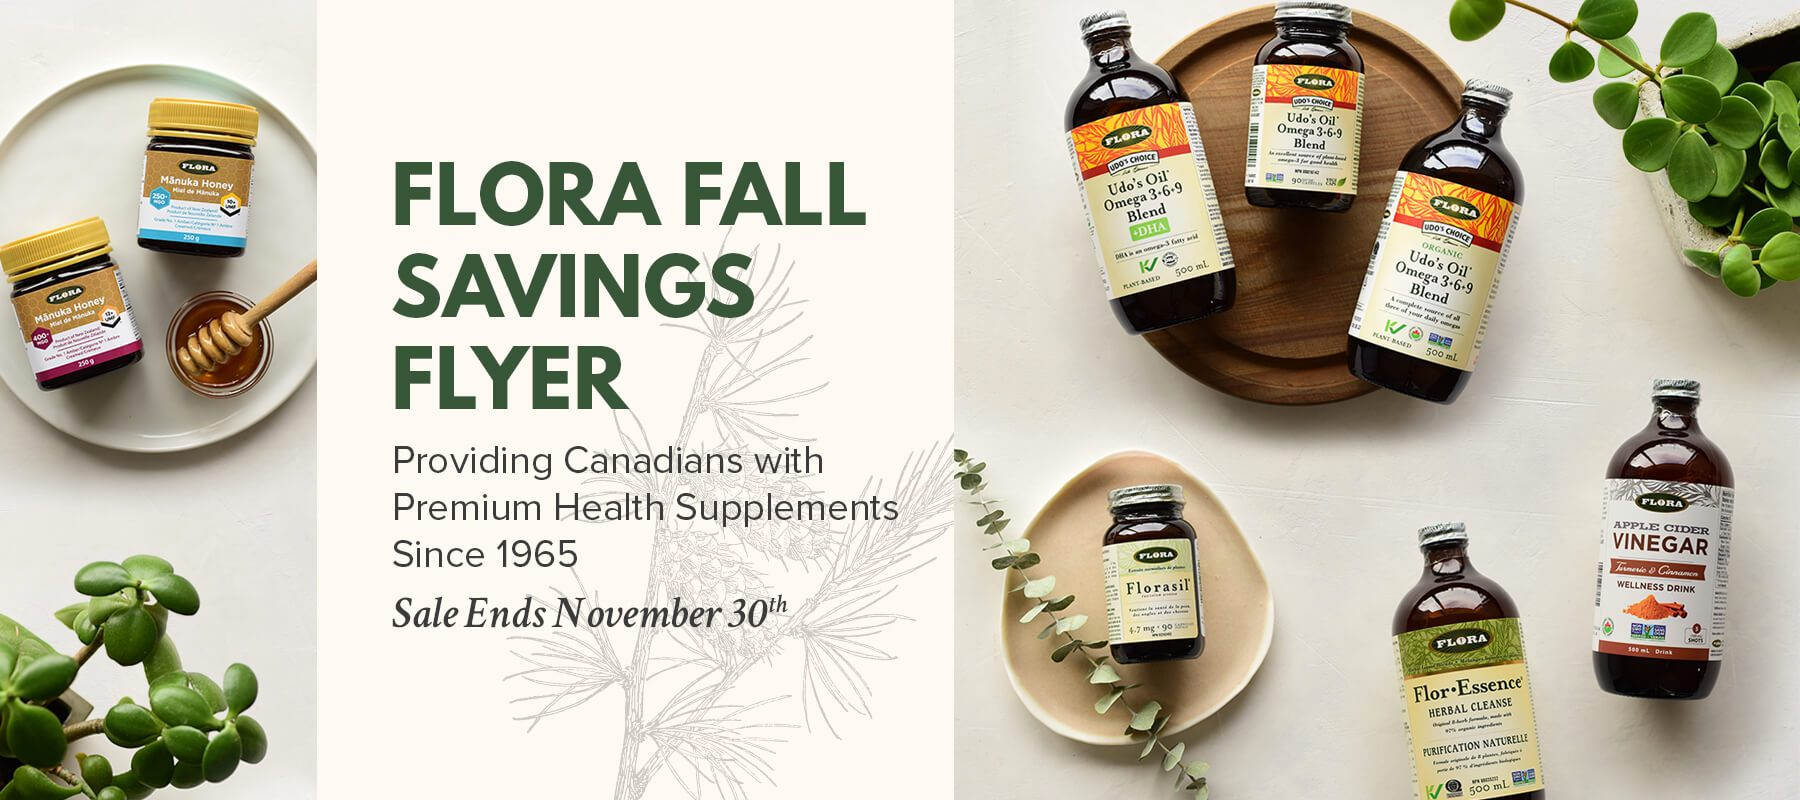 Flora Fall Saving Flyer